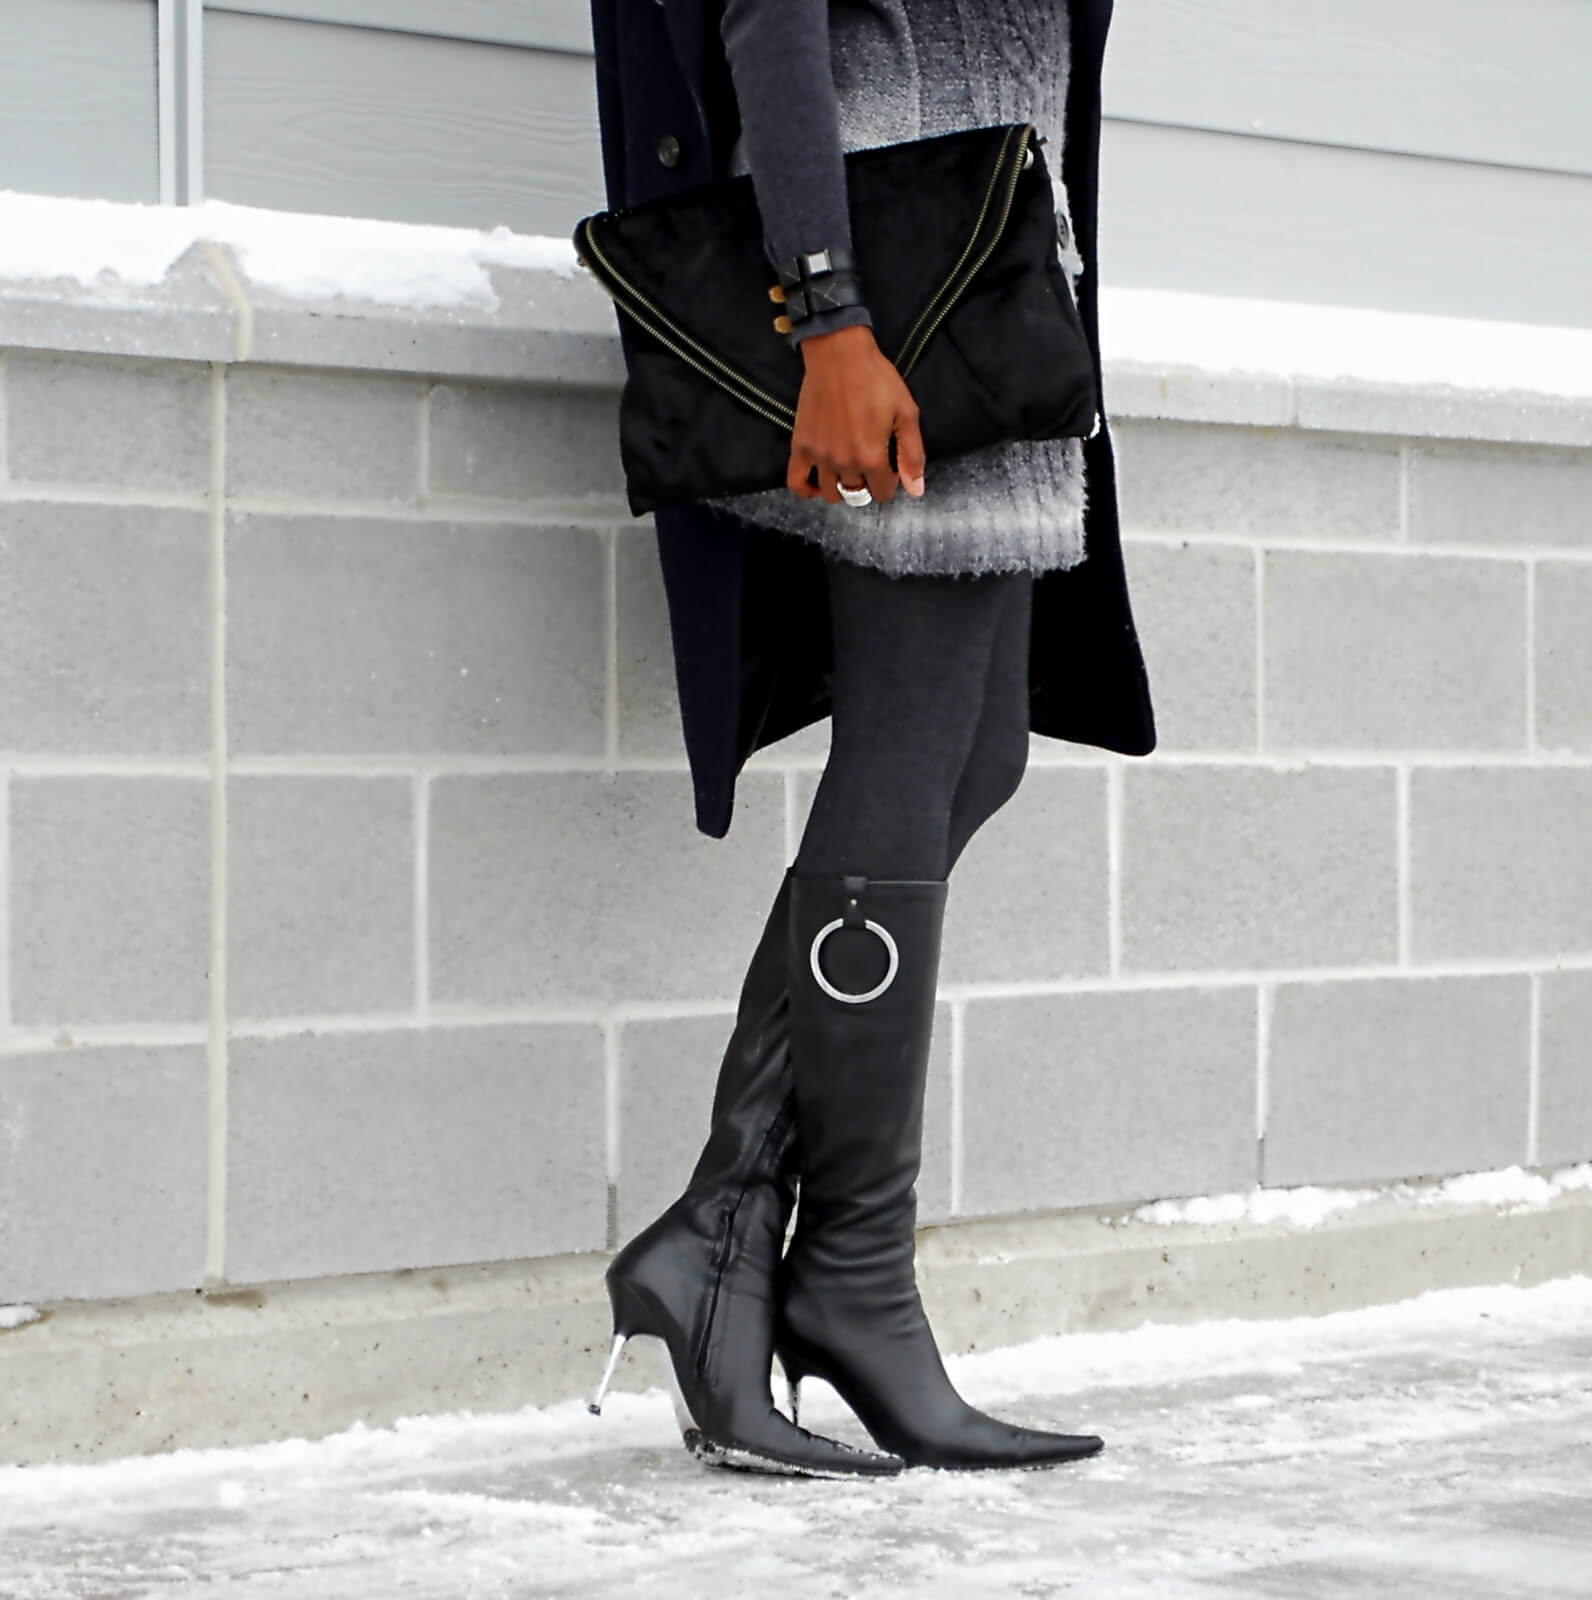 Navy duster coat,Matt and Nat bag, Aldo leather boots, chrome heel leather boots, hue tights, sweater dress, winter fashion trend 2015, winnipeg fashion blogger, Karl Lagerfeld watch, fashion